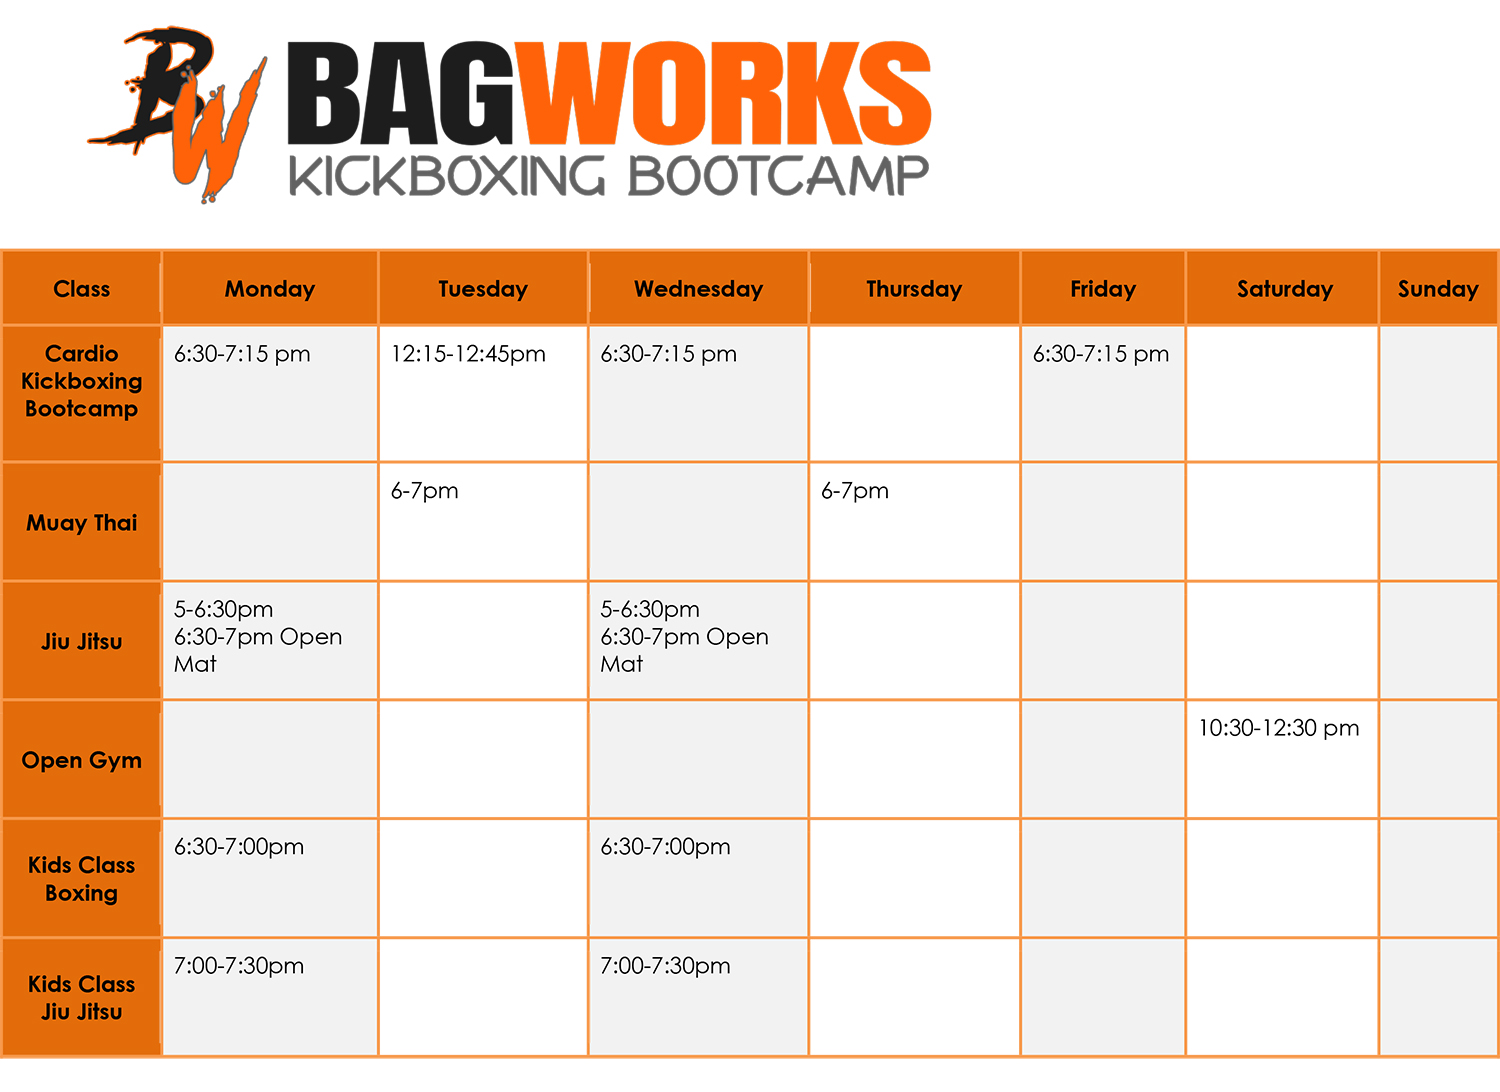 Bagworks Kickboxing Bootcamp Class Schedule